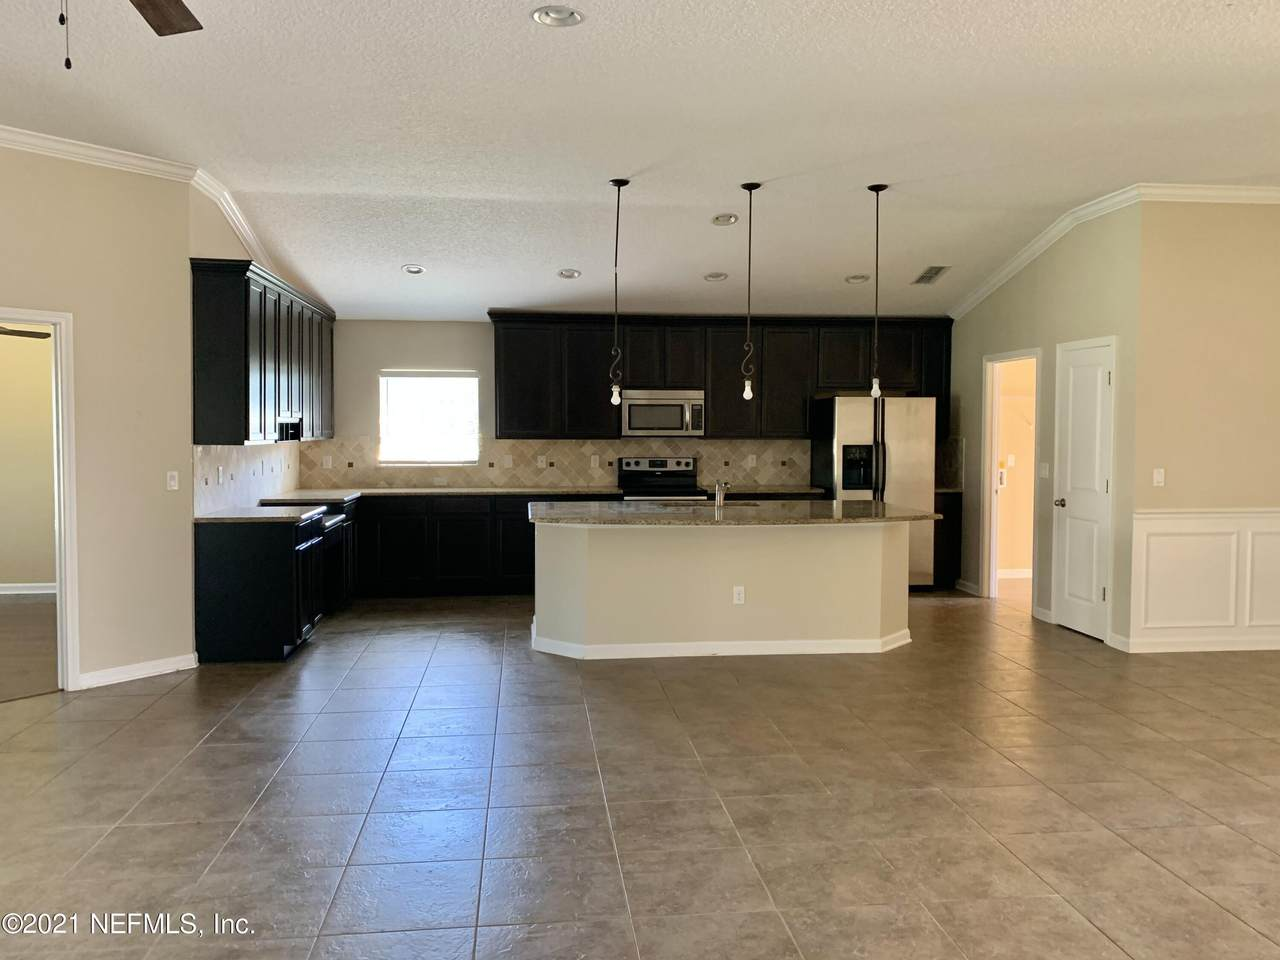 260 Bellagio Dr - Photo 1